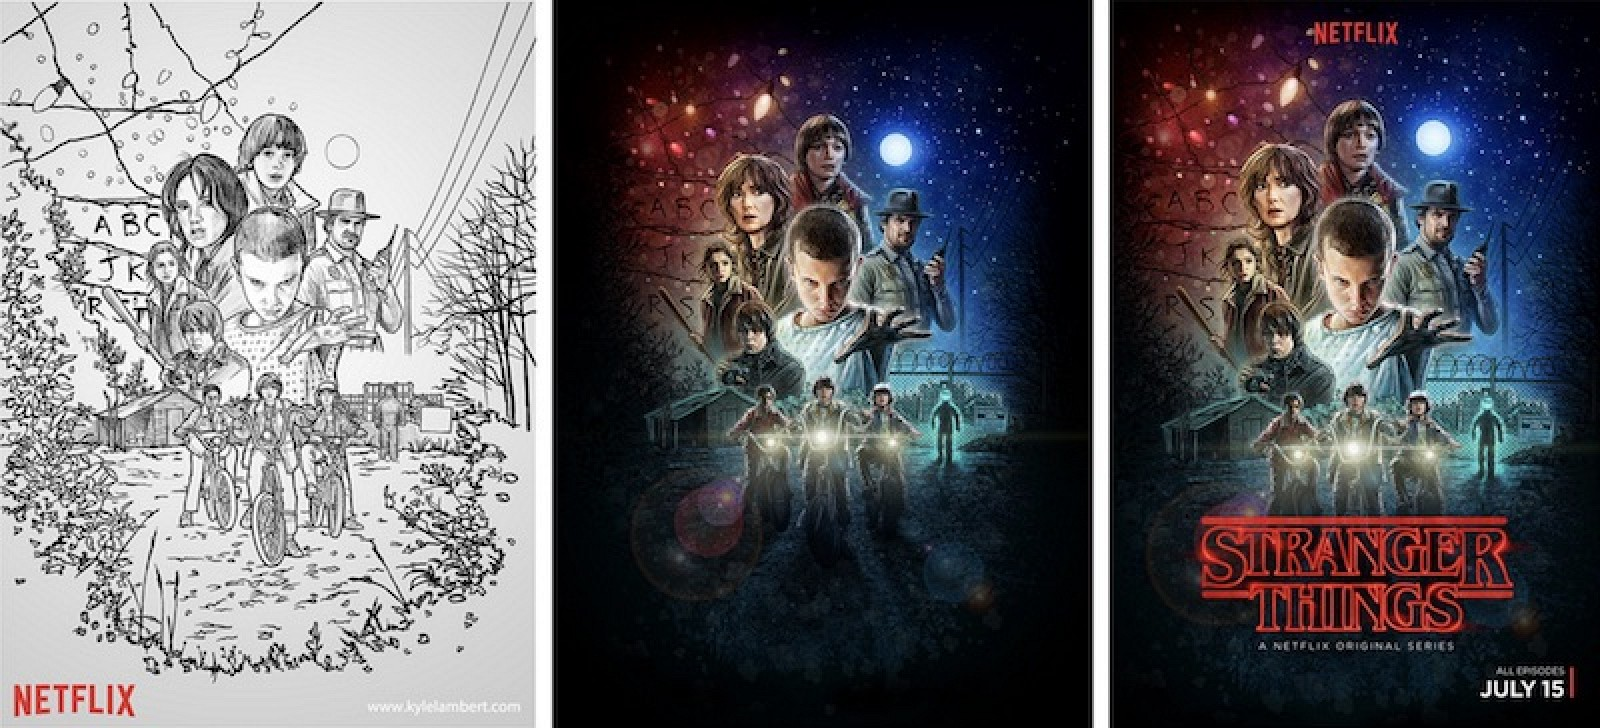 Poster design mac -  Stranger Things Poster Began As Sketch Created With Ipad Pro And Apple Pencil Mac Rumors